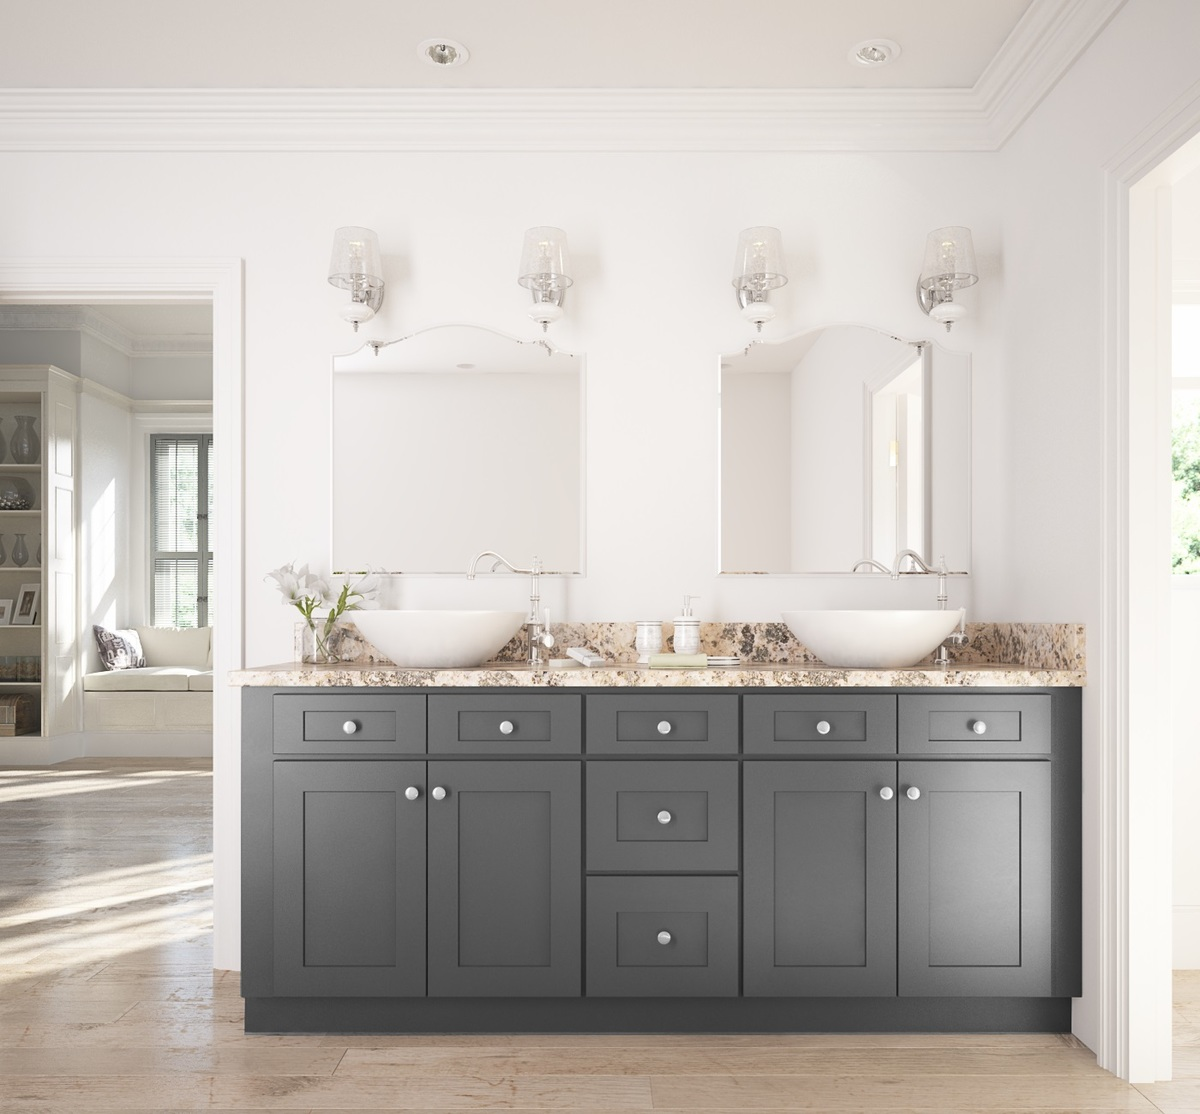 Light grey shaker ready to assemble kitchen cabinets - Grey Shaker Ready To Assemble Bathroom Vanities Grey 20shaker